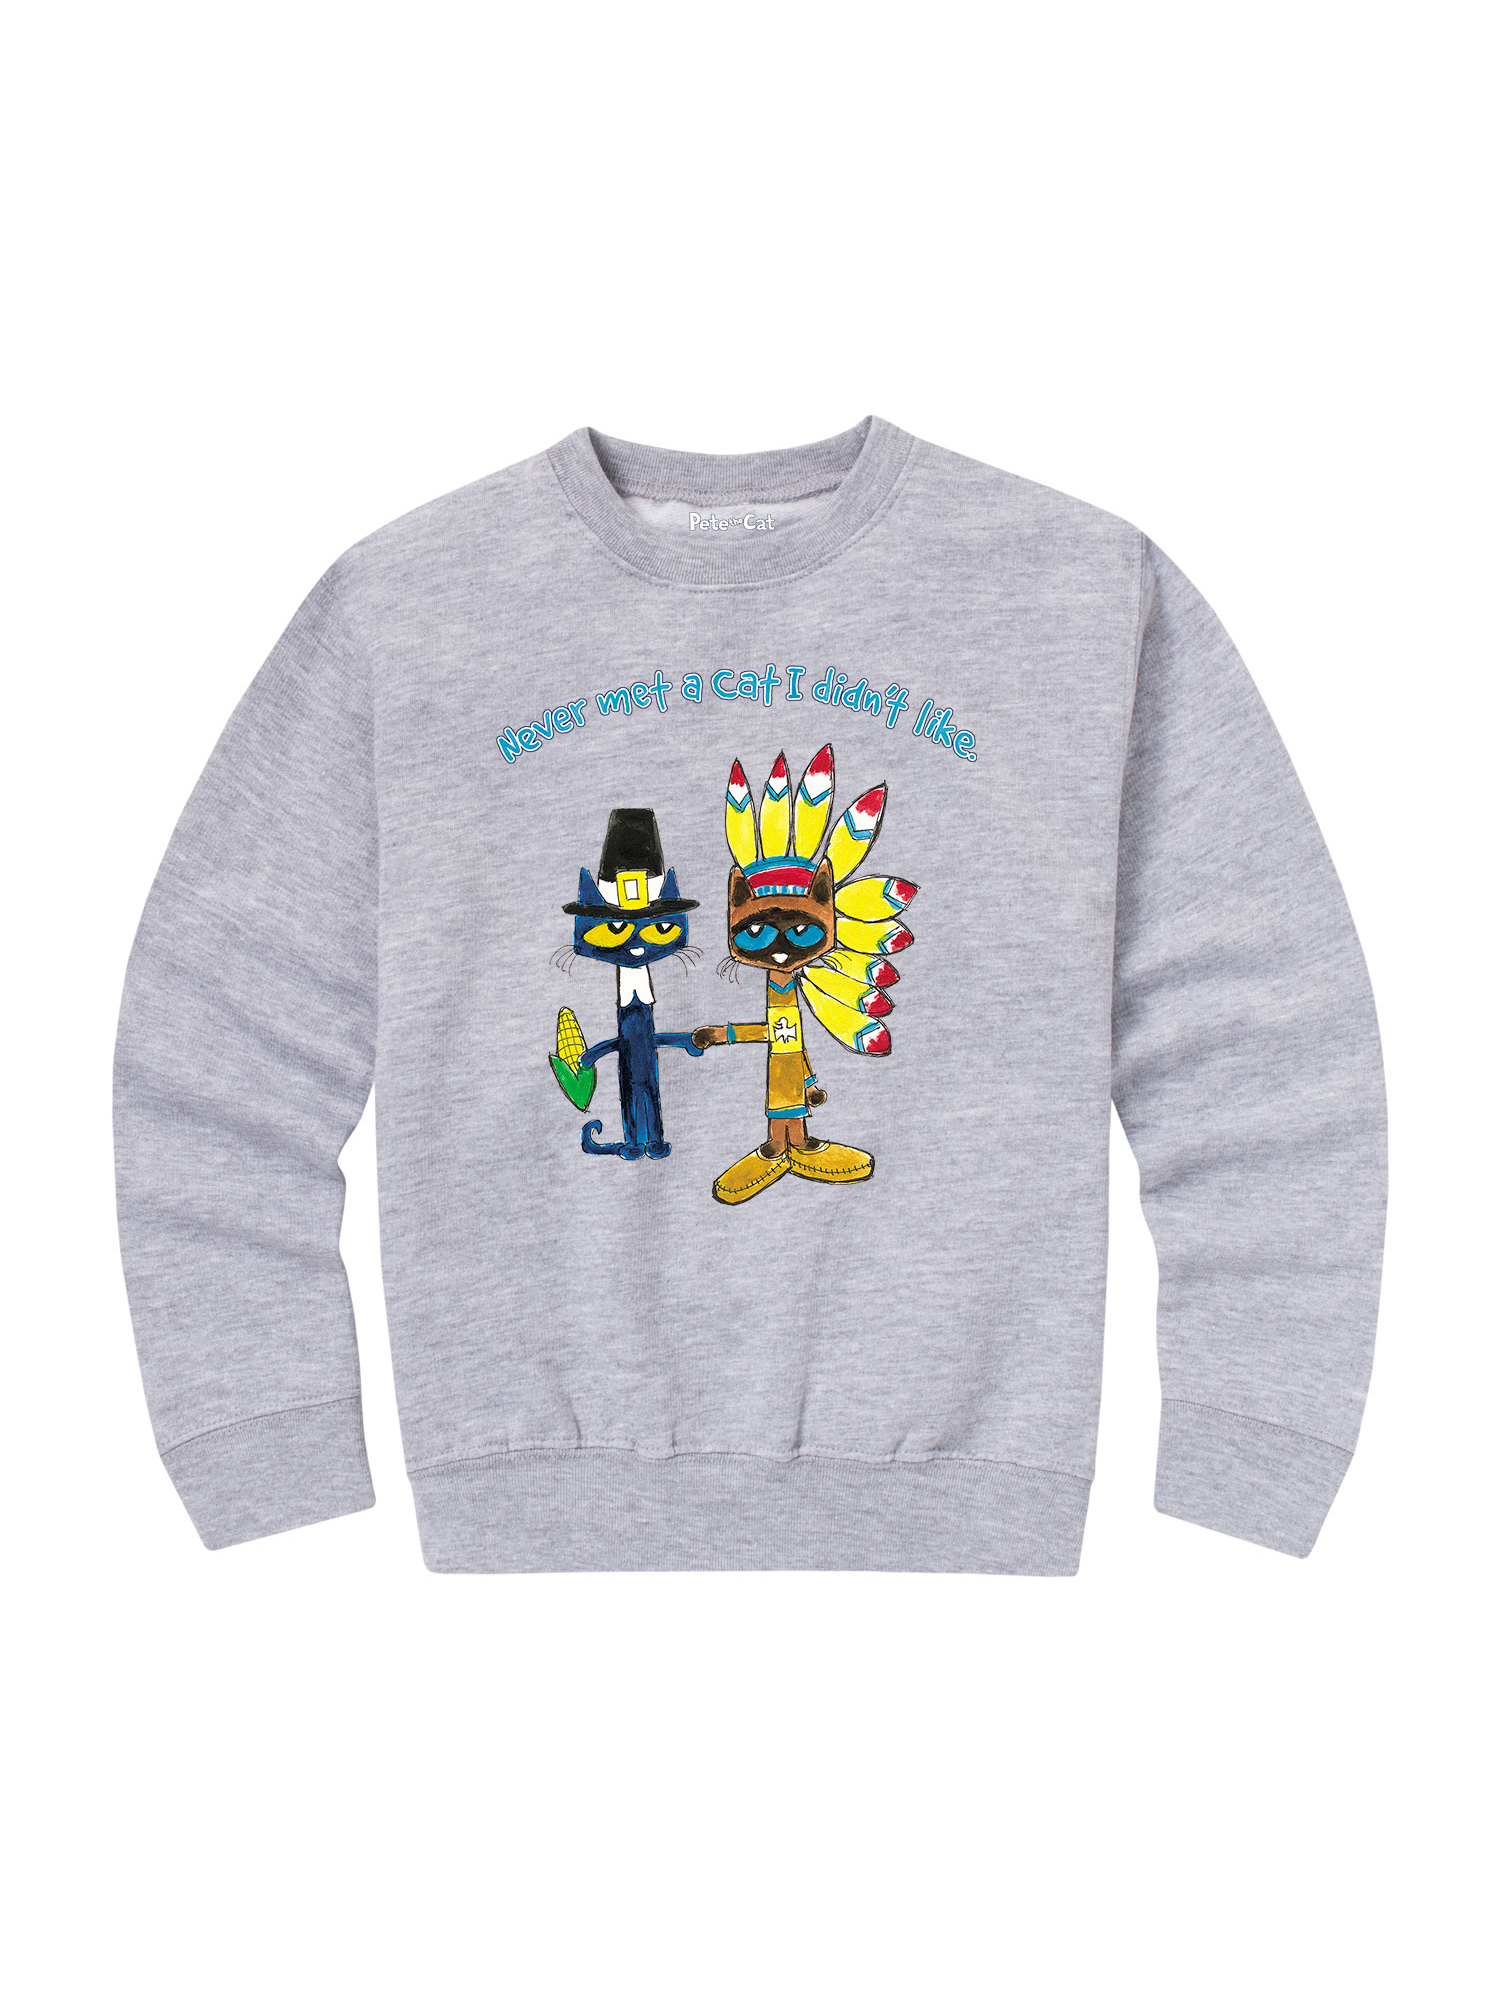 Pete The Cat Never Met A Cat - Toddler Crew Fleece